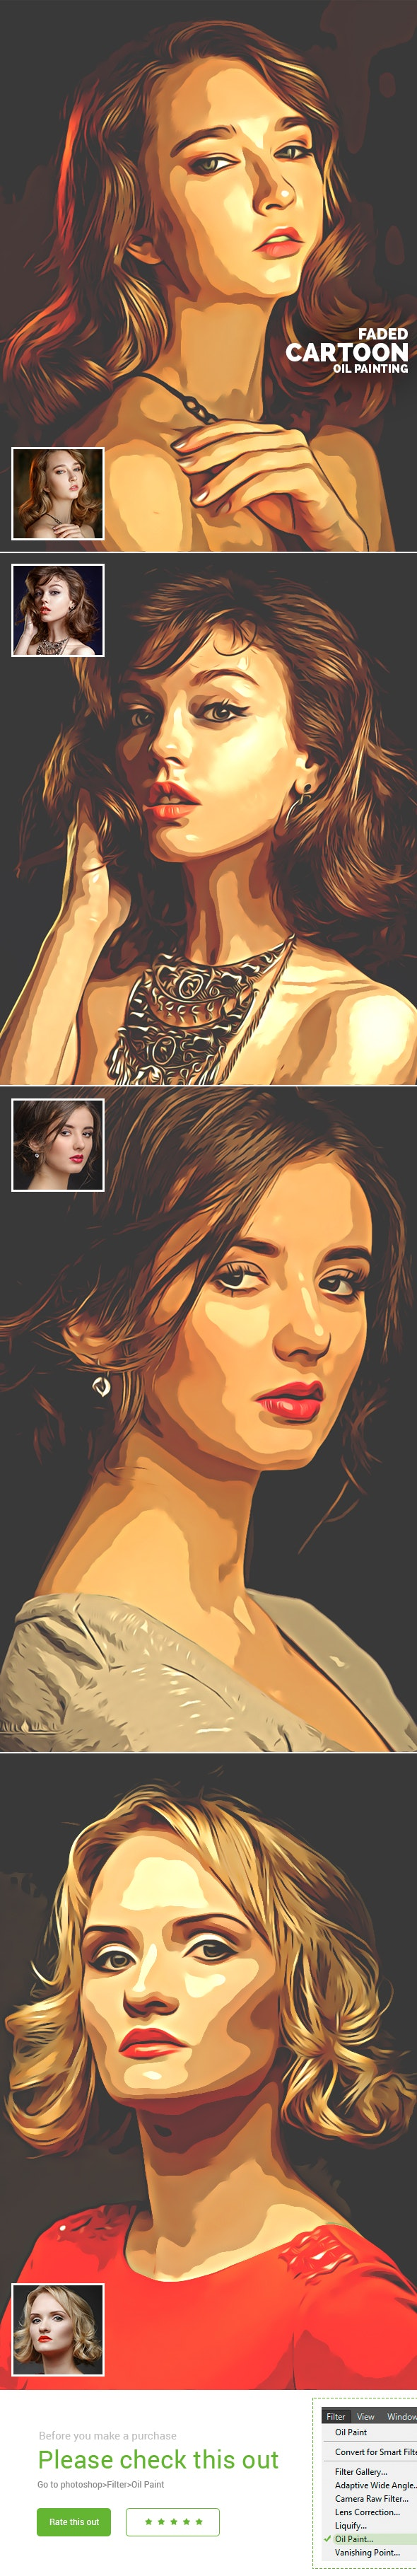 Faded Cartoon Oil Paint - Photo Effects Actions